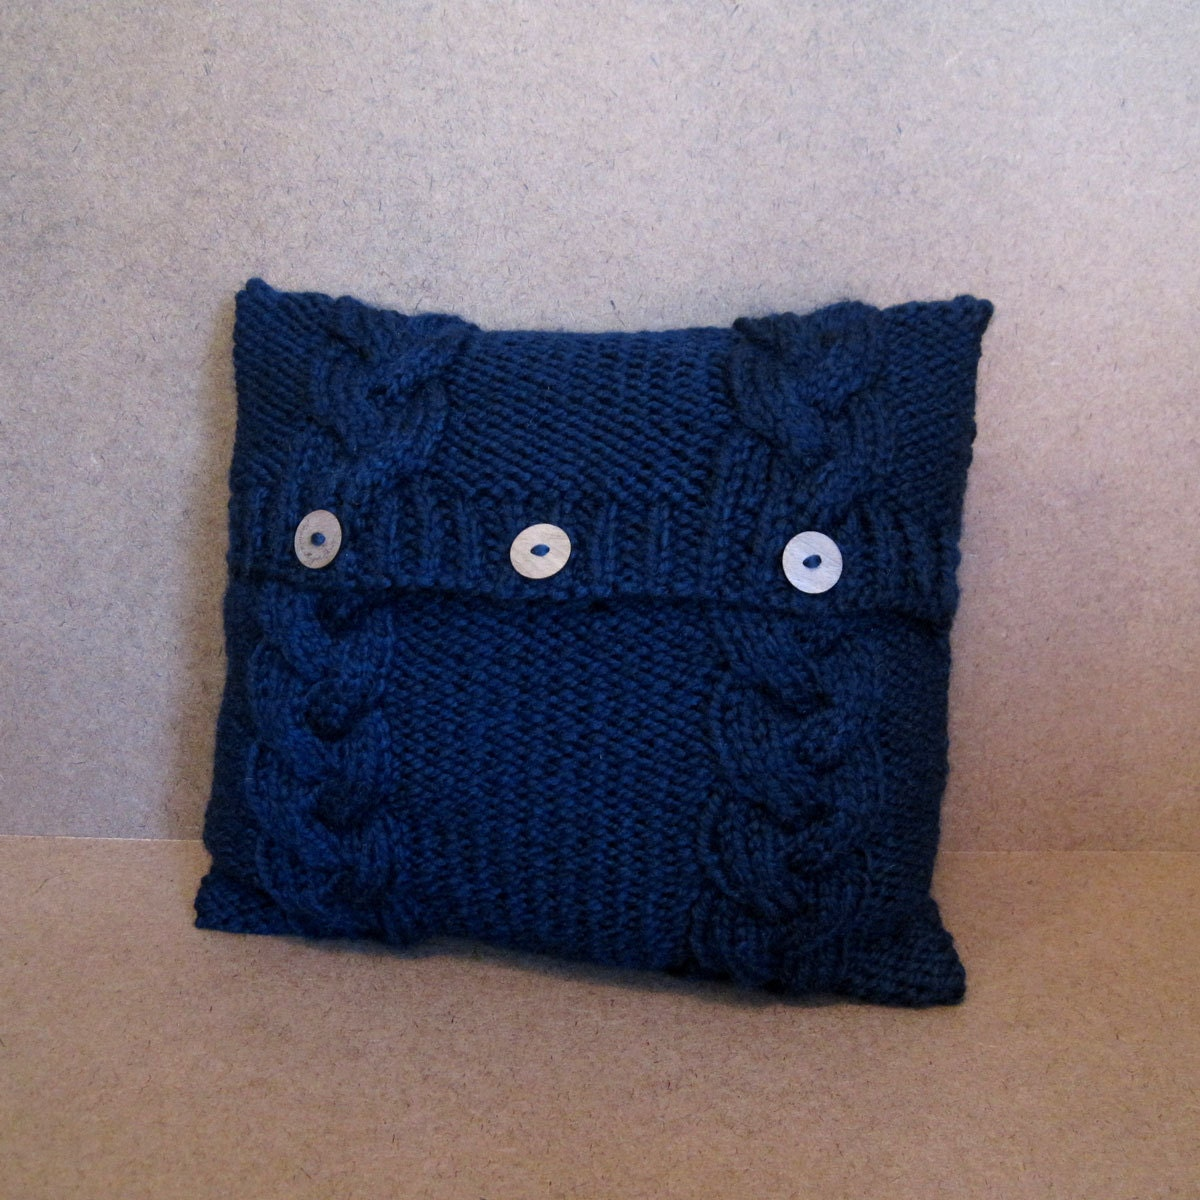 Chunky Knit Pillow Pattern : Chunky Knit Pillow Cover Textured Knit Pillow Case MADE TO